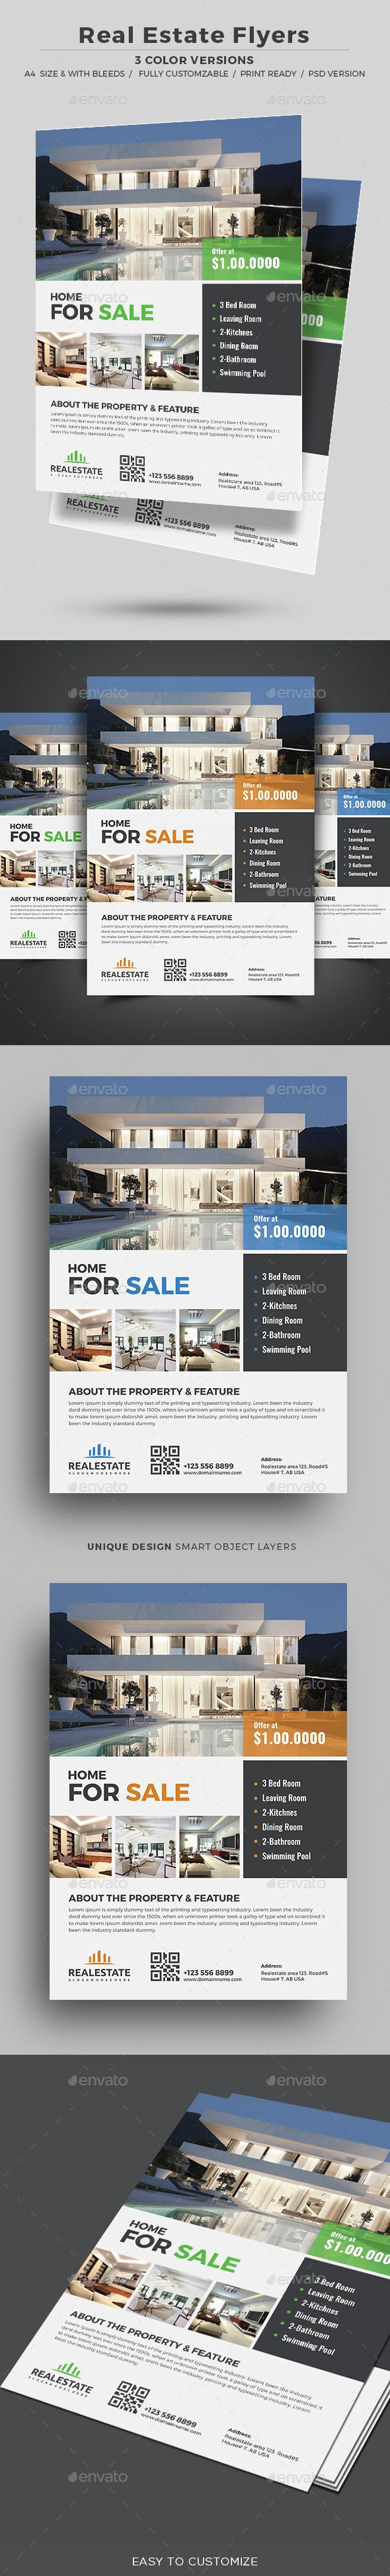 best ideas about real estate flyers real estate real estate flyer corporate flyers here